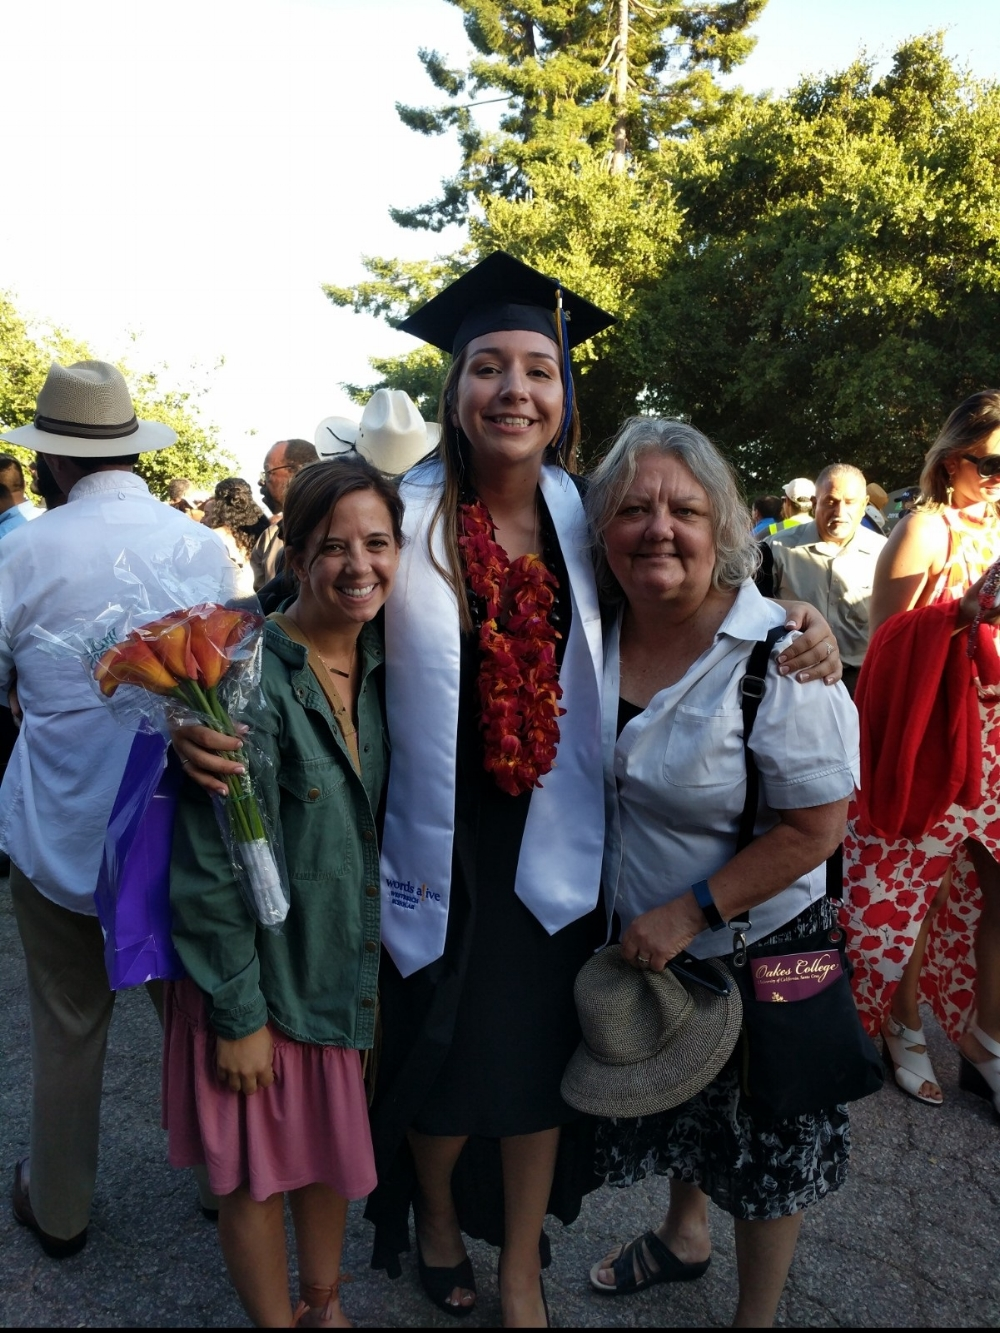 From left to right: Words Alive Operations Directior Chrissy Green Califf, Words Alive Westreich Scholarship Student Brittany Jackson, and Words Alive Volunteer Mentor Sarah Archibald. Chrissy and Sarah made the journey up to UC Santa Cruz for Brittany's graduation!